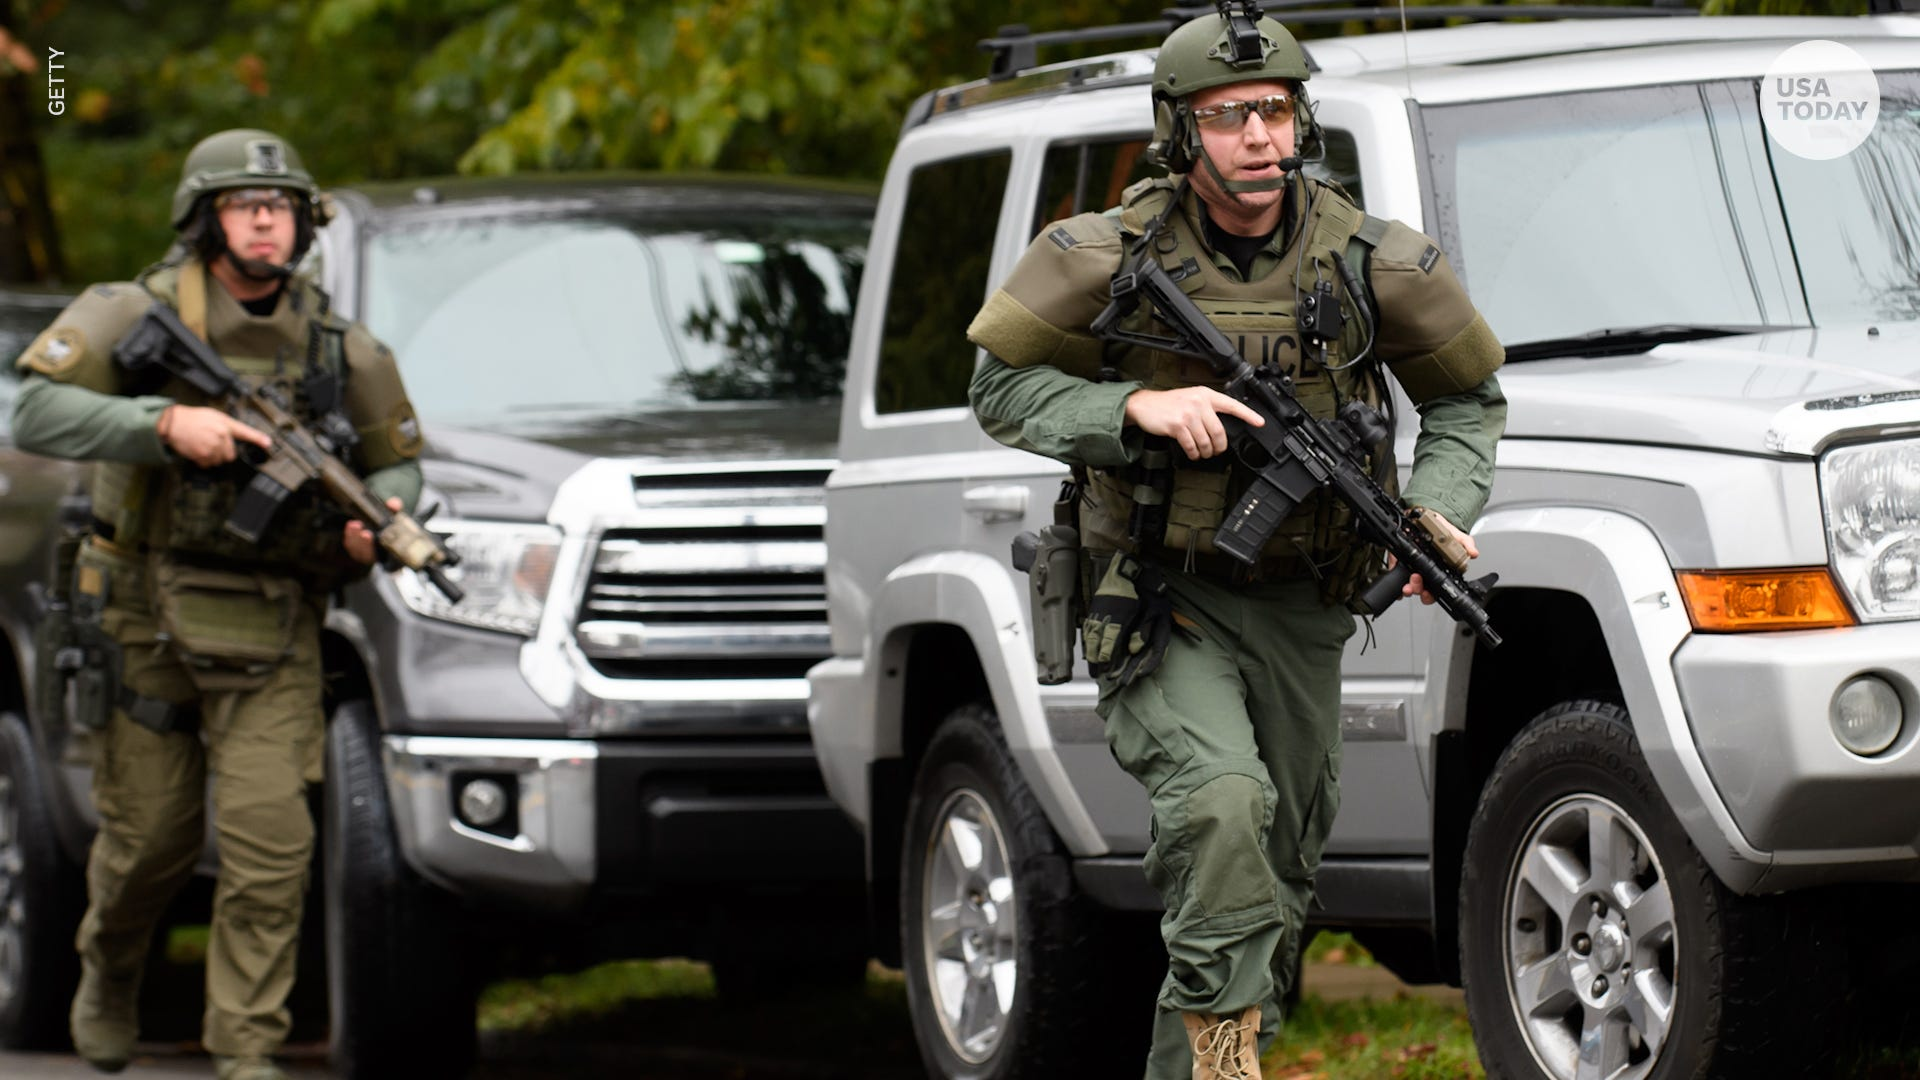 Pittsburgh shooting scanner: Suspect saying 'all these Jews need to die'